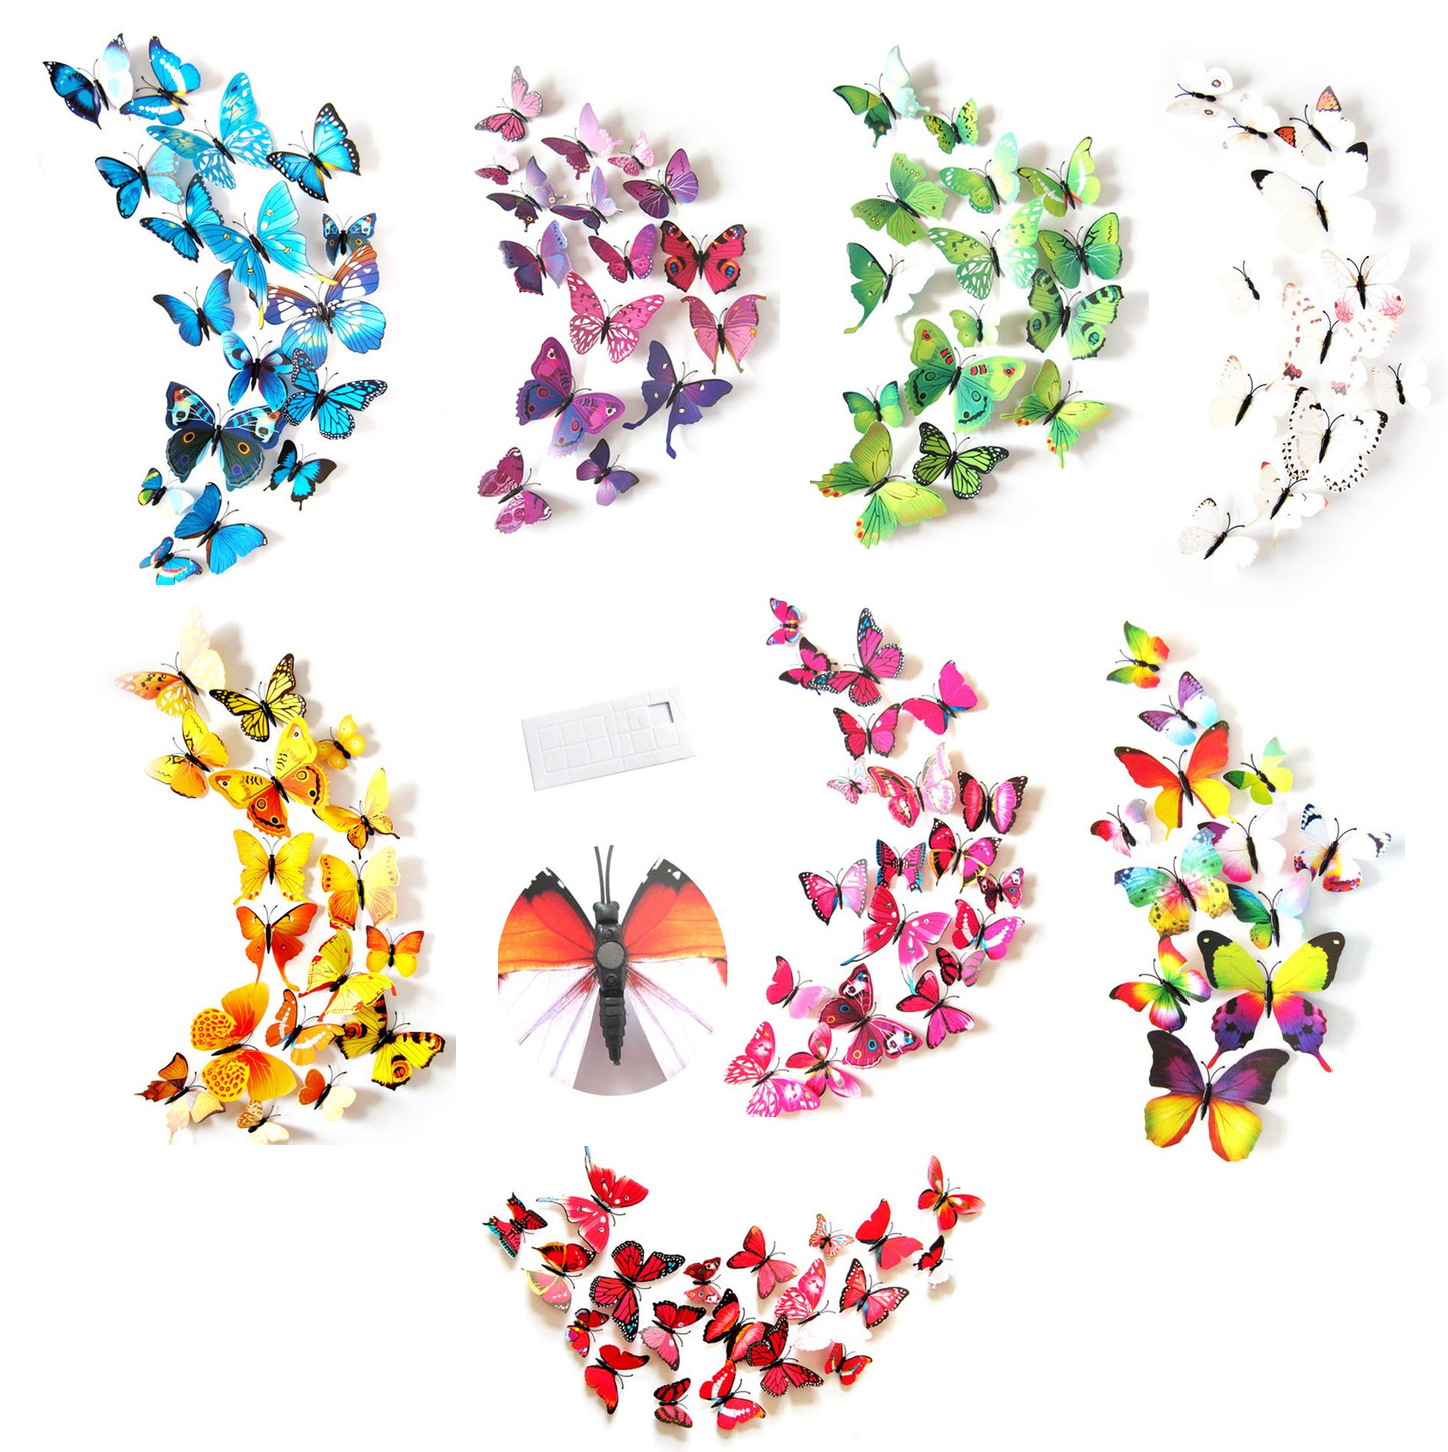 Home Decoration - Butterfly Wall Stickers / Magnet, 3D Art Decals Home Room Decorations Decor Kids